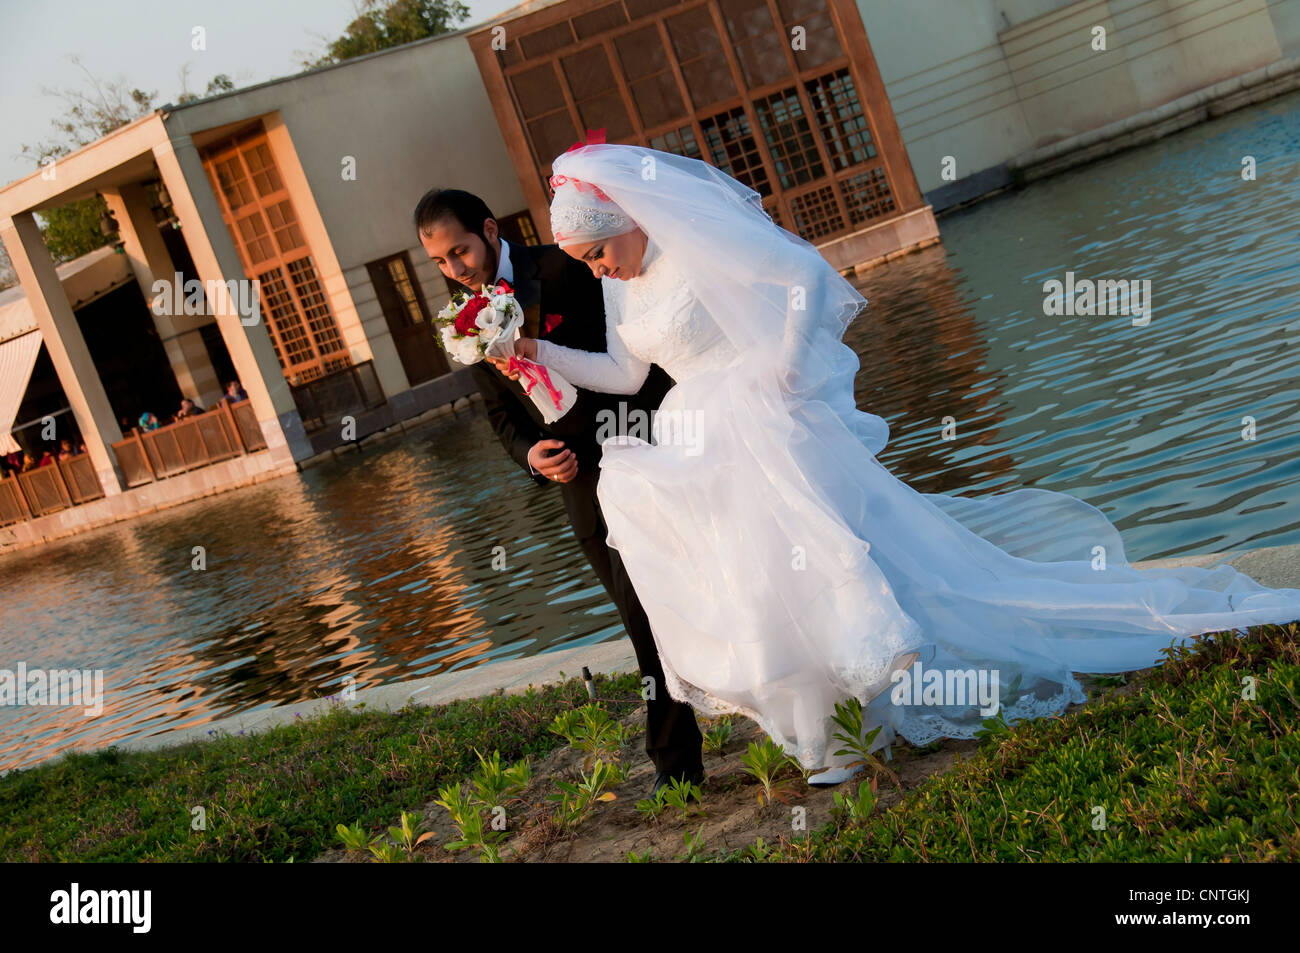 Bride and groom at Al Azhar park Cairo - Stock Image